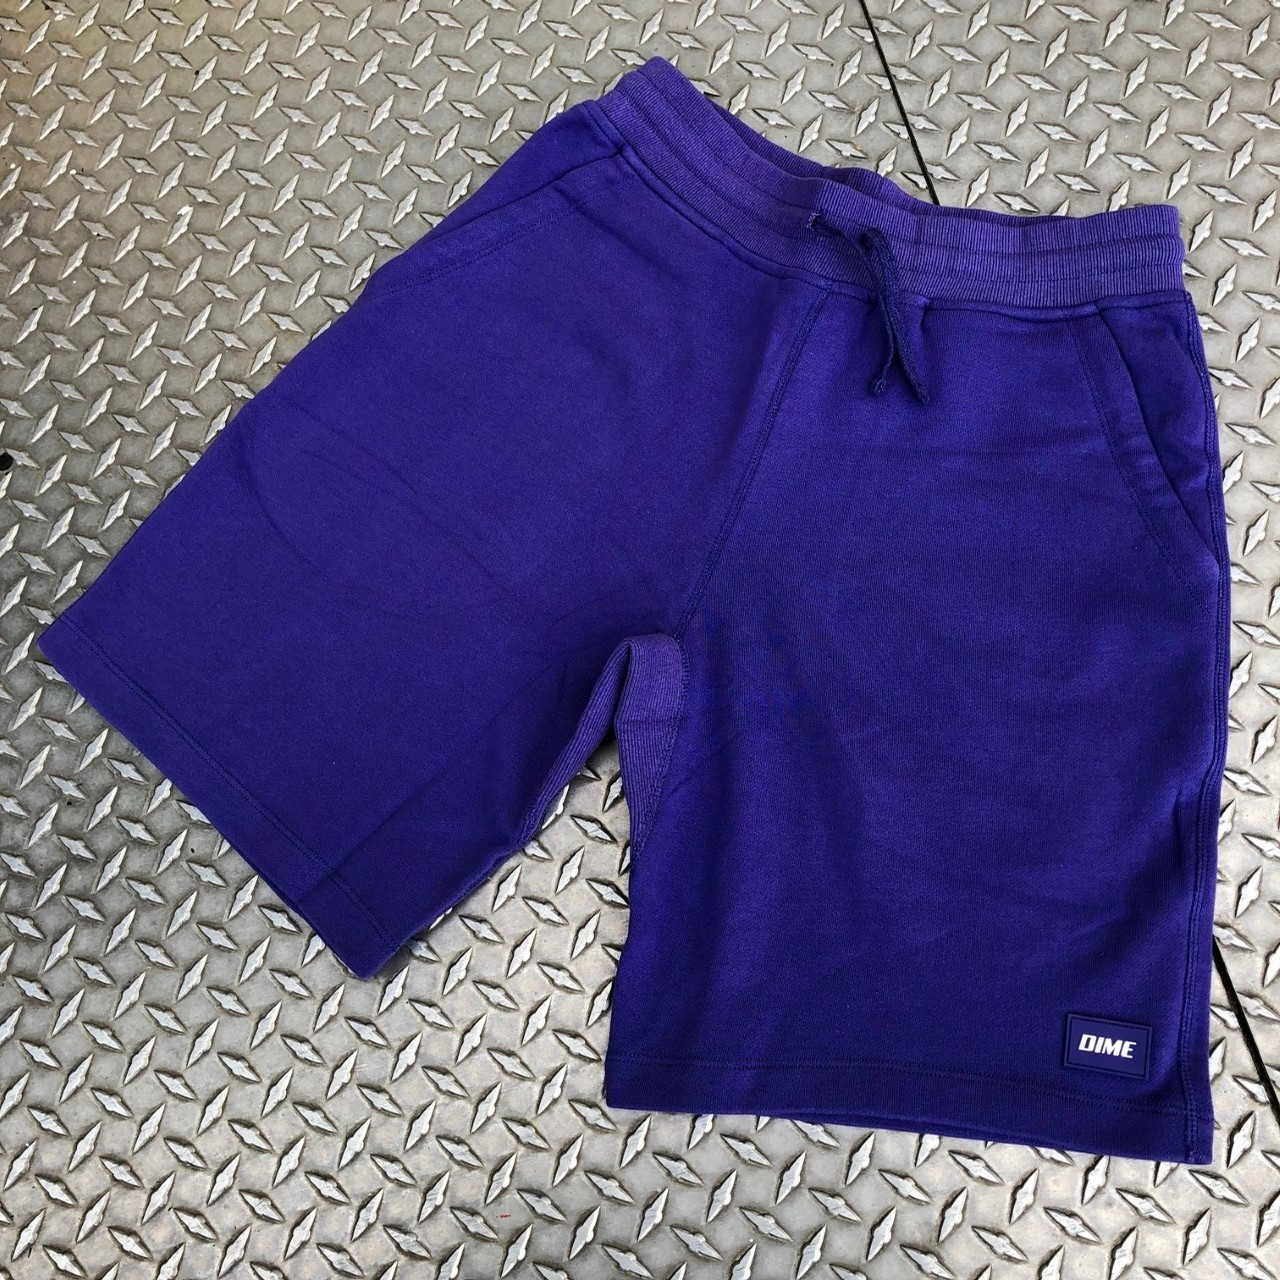 FRENCH TERRY SHORTS (PURPLE)